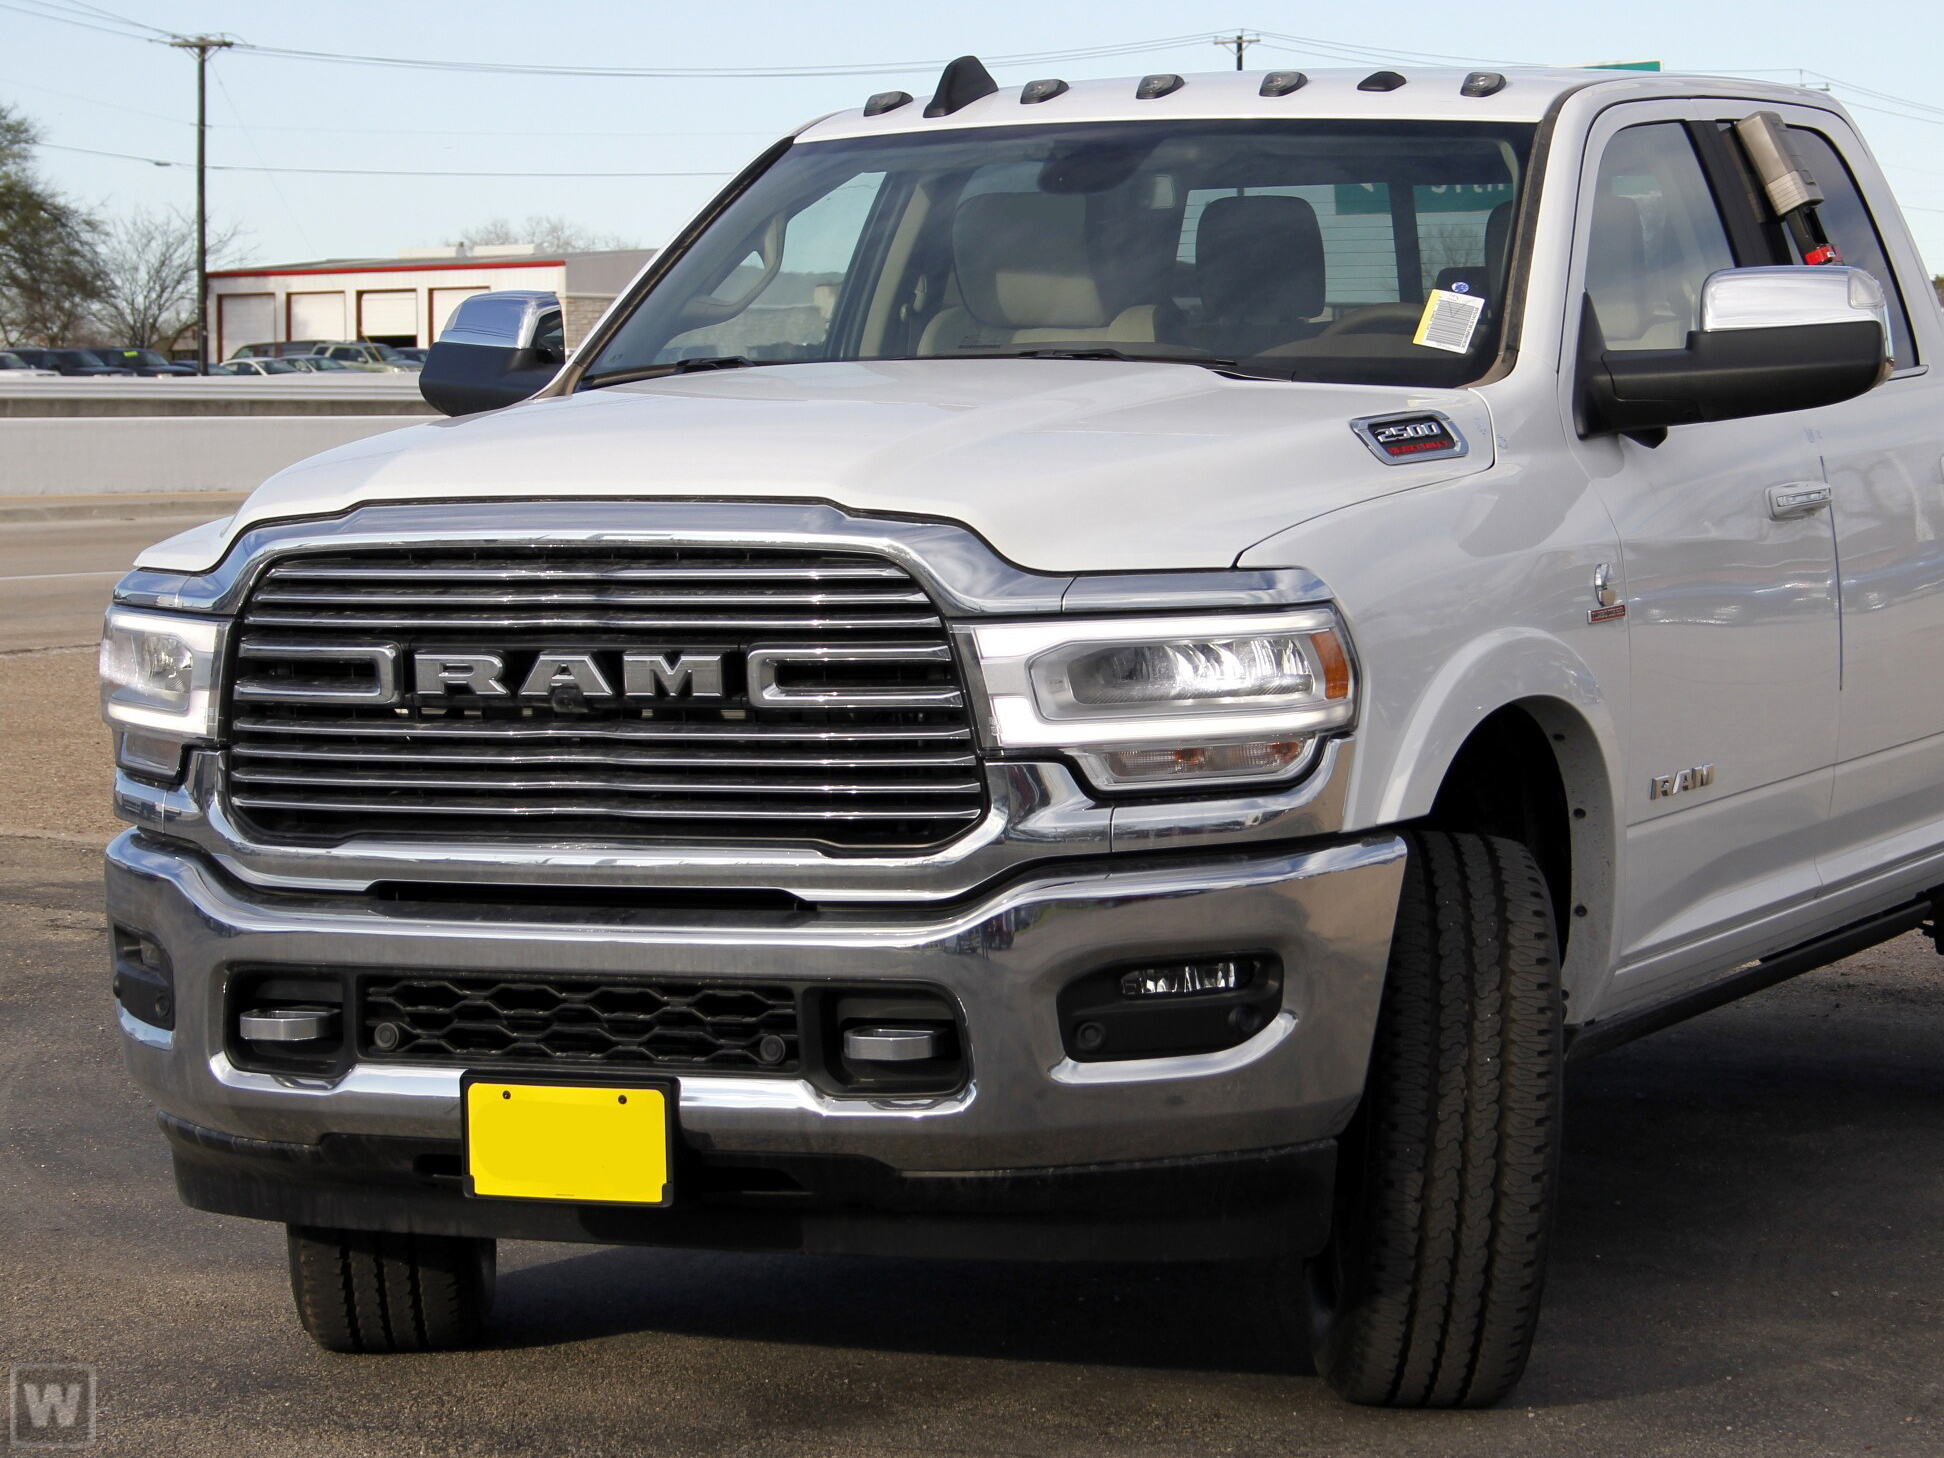 2020 Ram 2500 Crew Cab 4x4, Pickup #620968 - photo 1